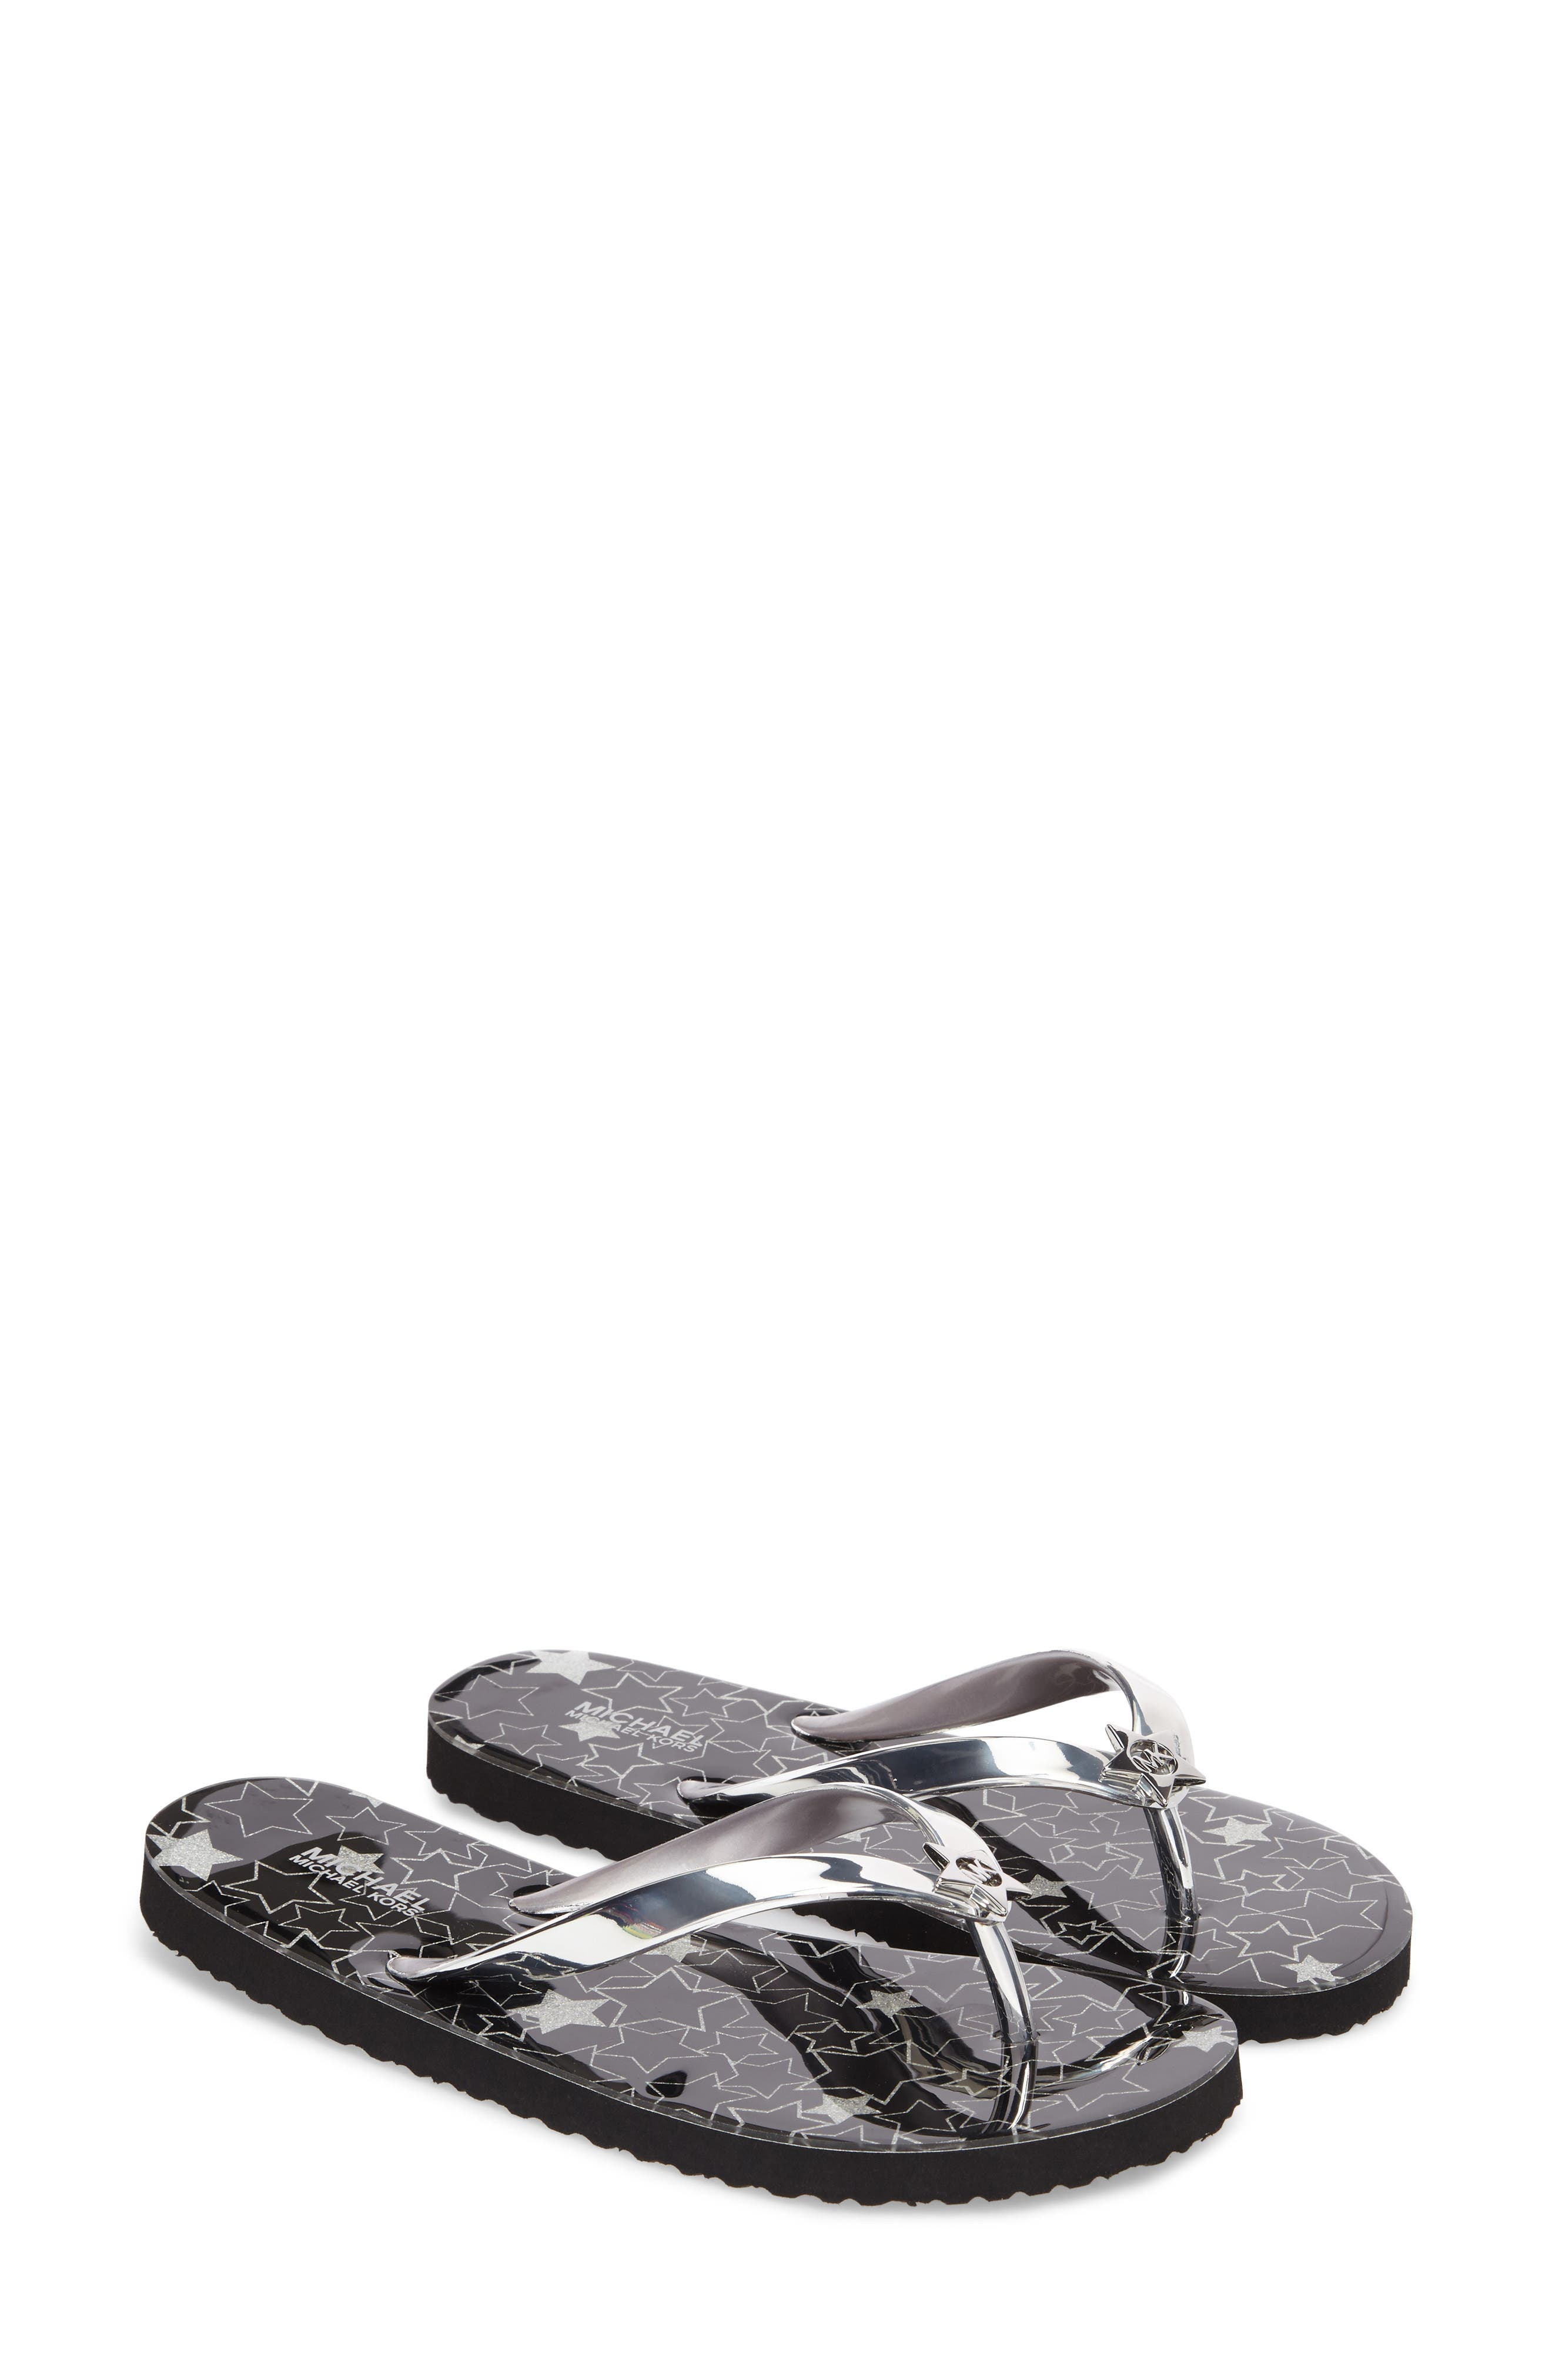 MK Star Flip Flop,                             Main thumbnail 1, color,